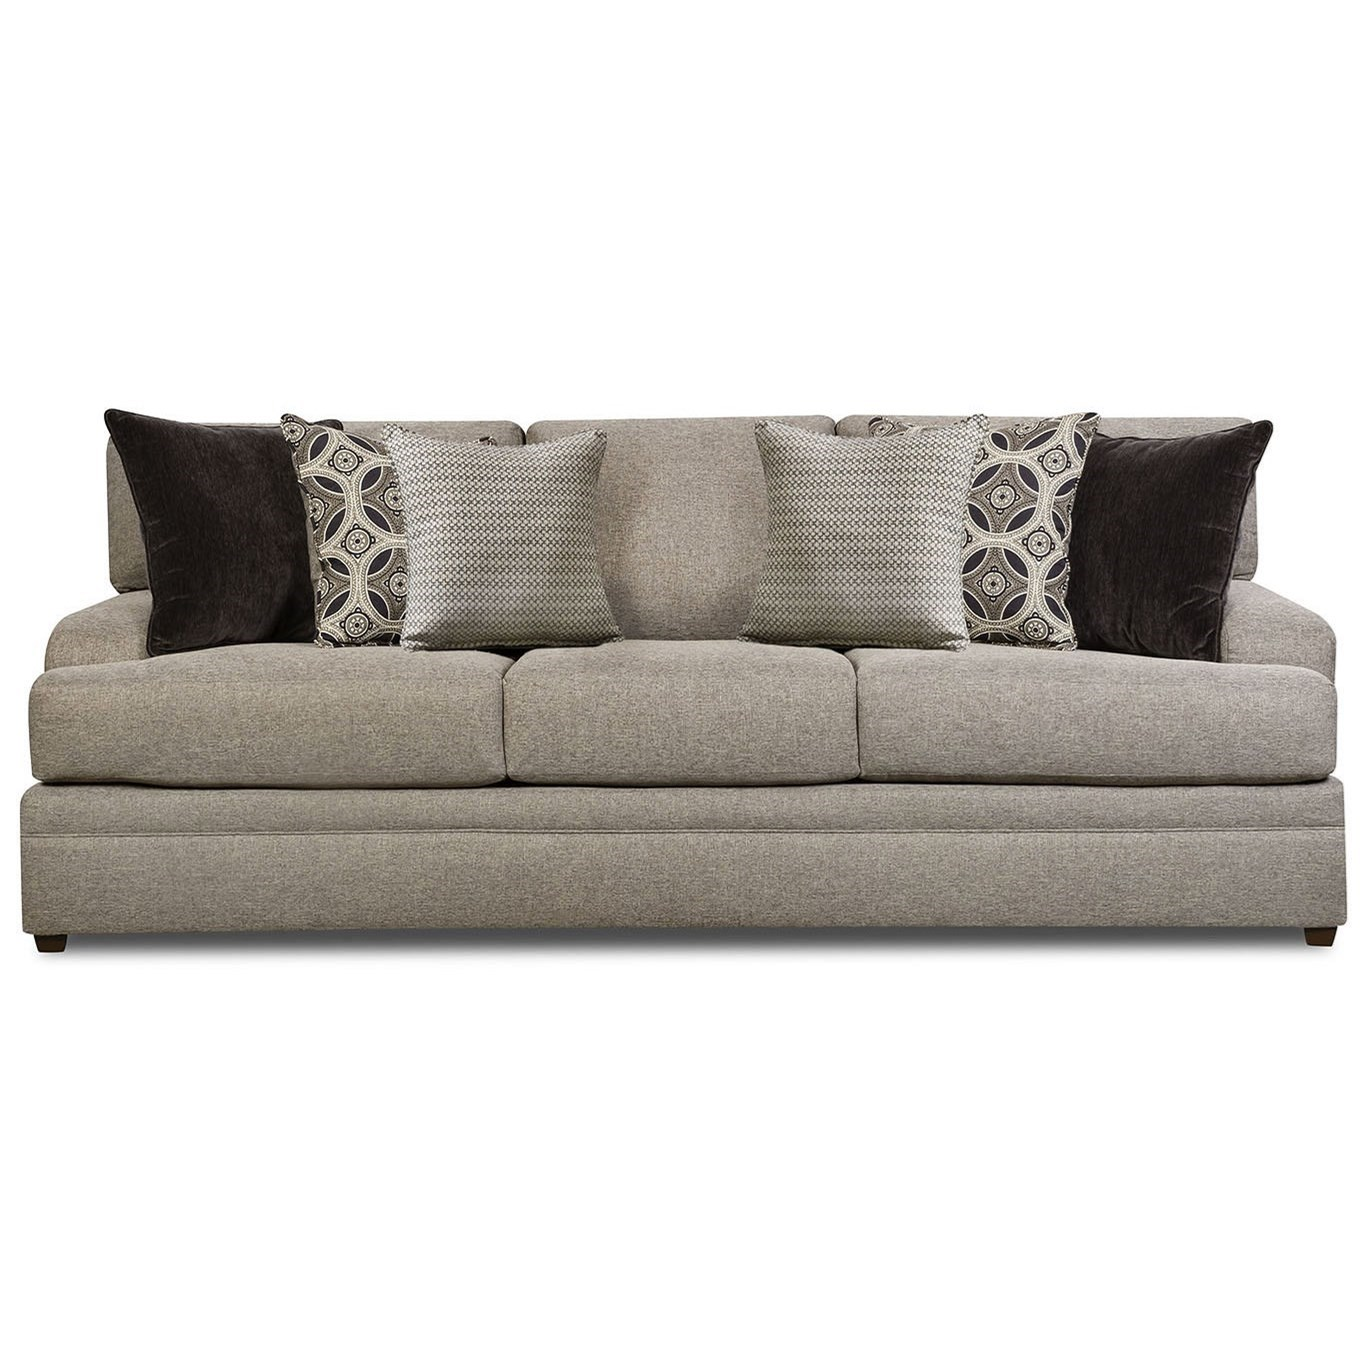 8561BR Casual Sofa by United Furniture Industries at Dream Home Interiors